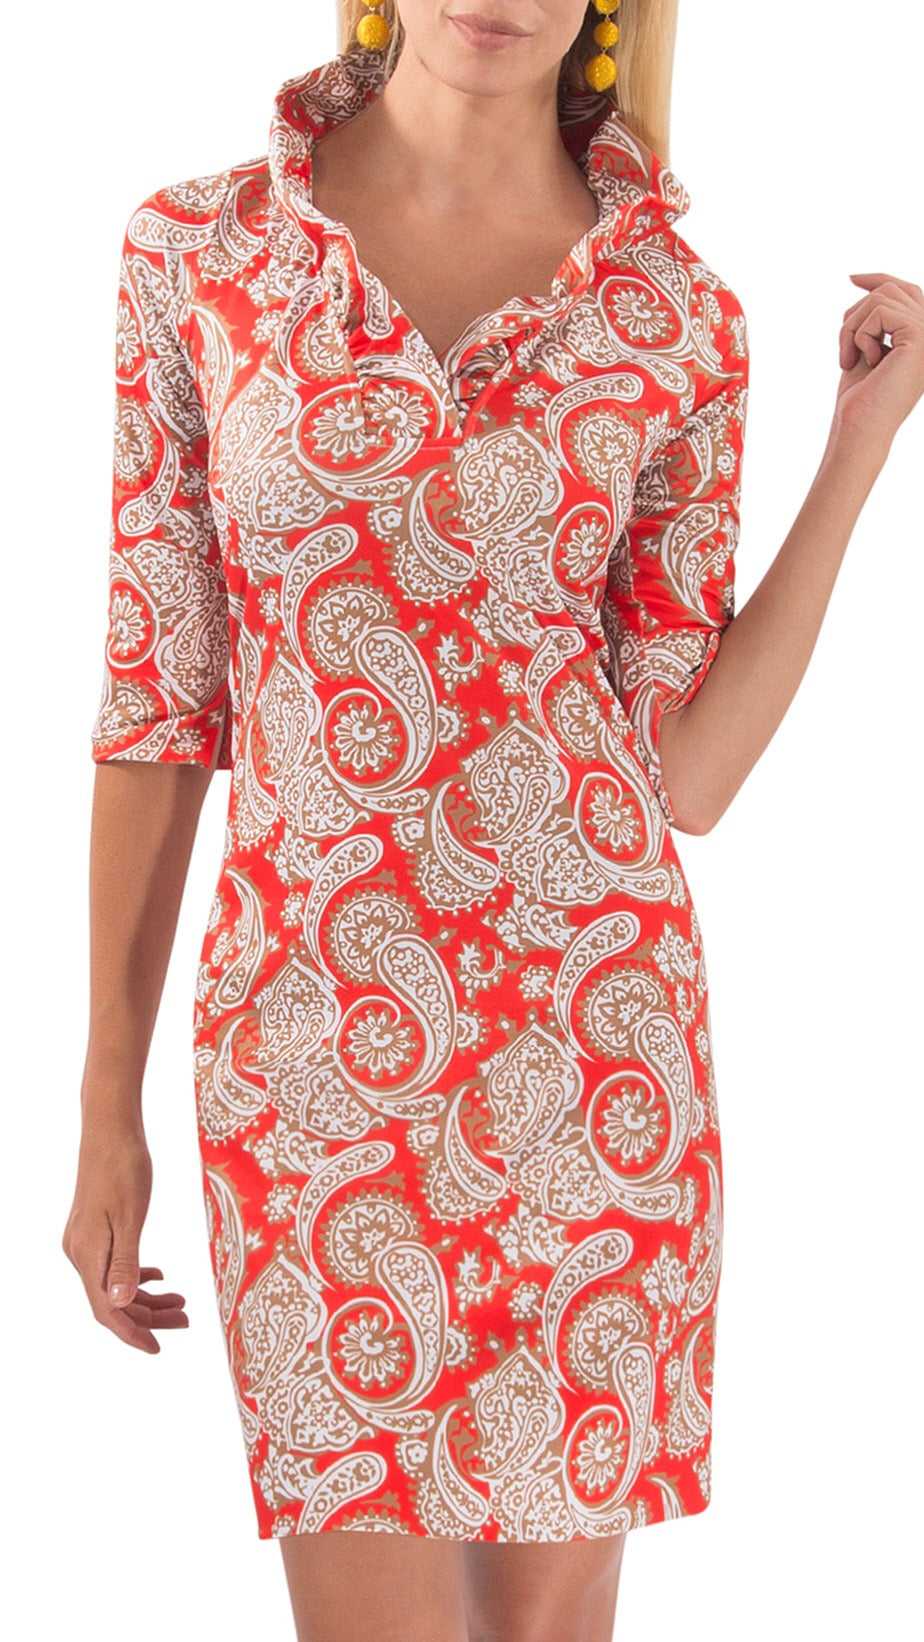 Posey Ruffleneck Dress - Orange Paisley